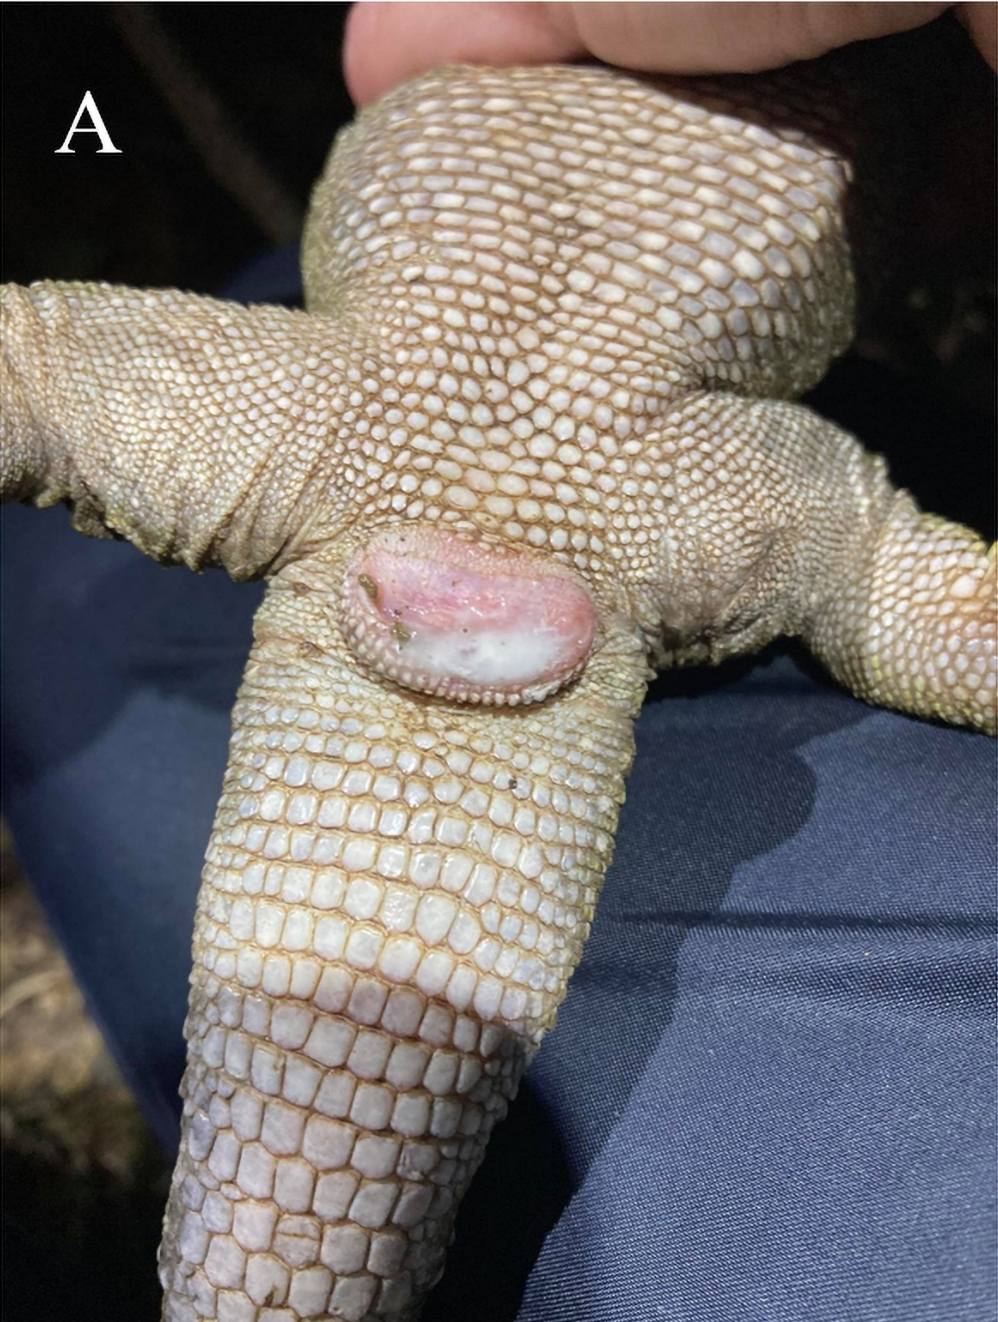 Sperm is visible on the female's cloaca after separating a mating pair.